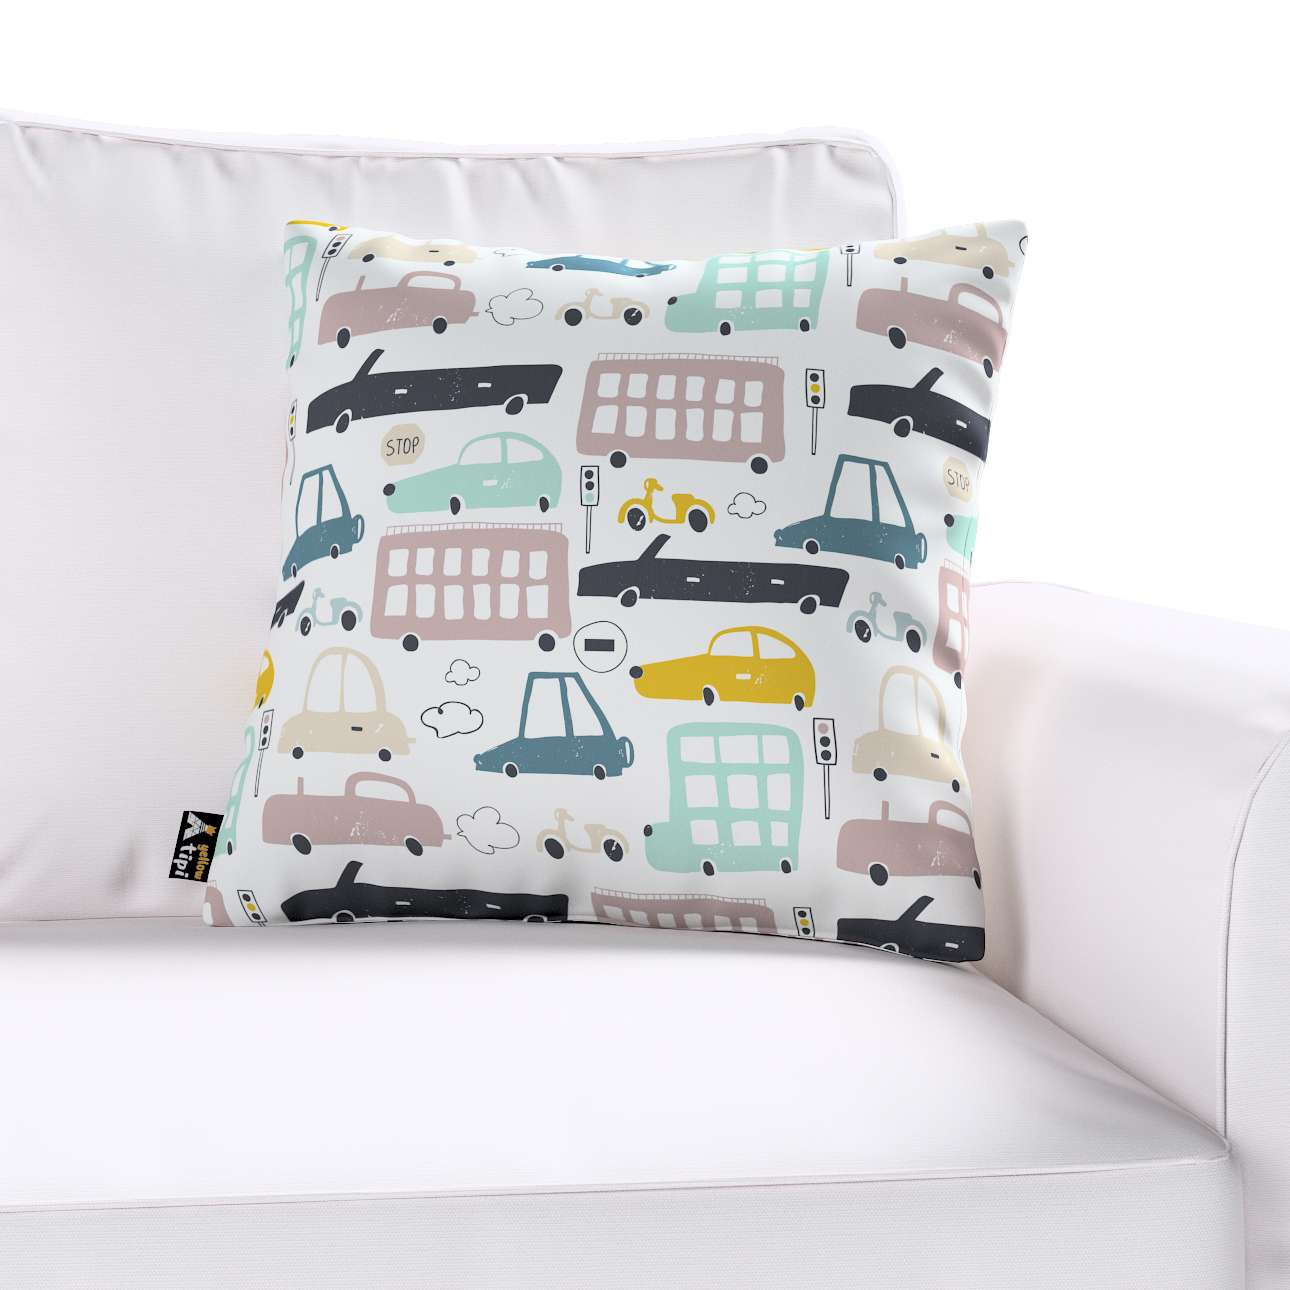 Milly cushion cover in collection Magic Collection, fabric: 500-02